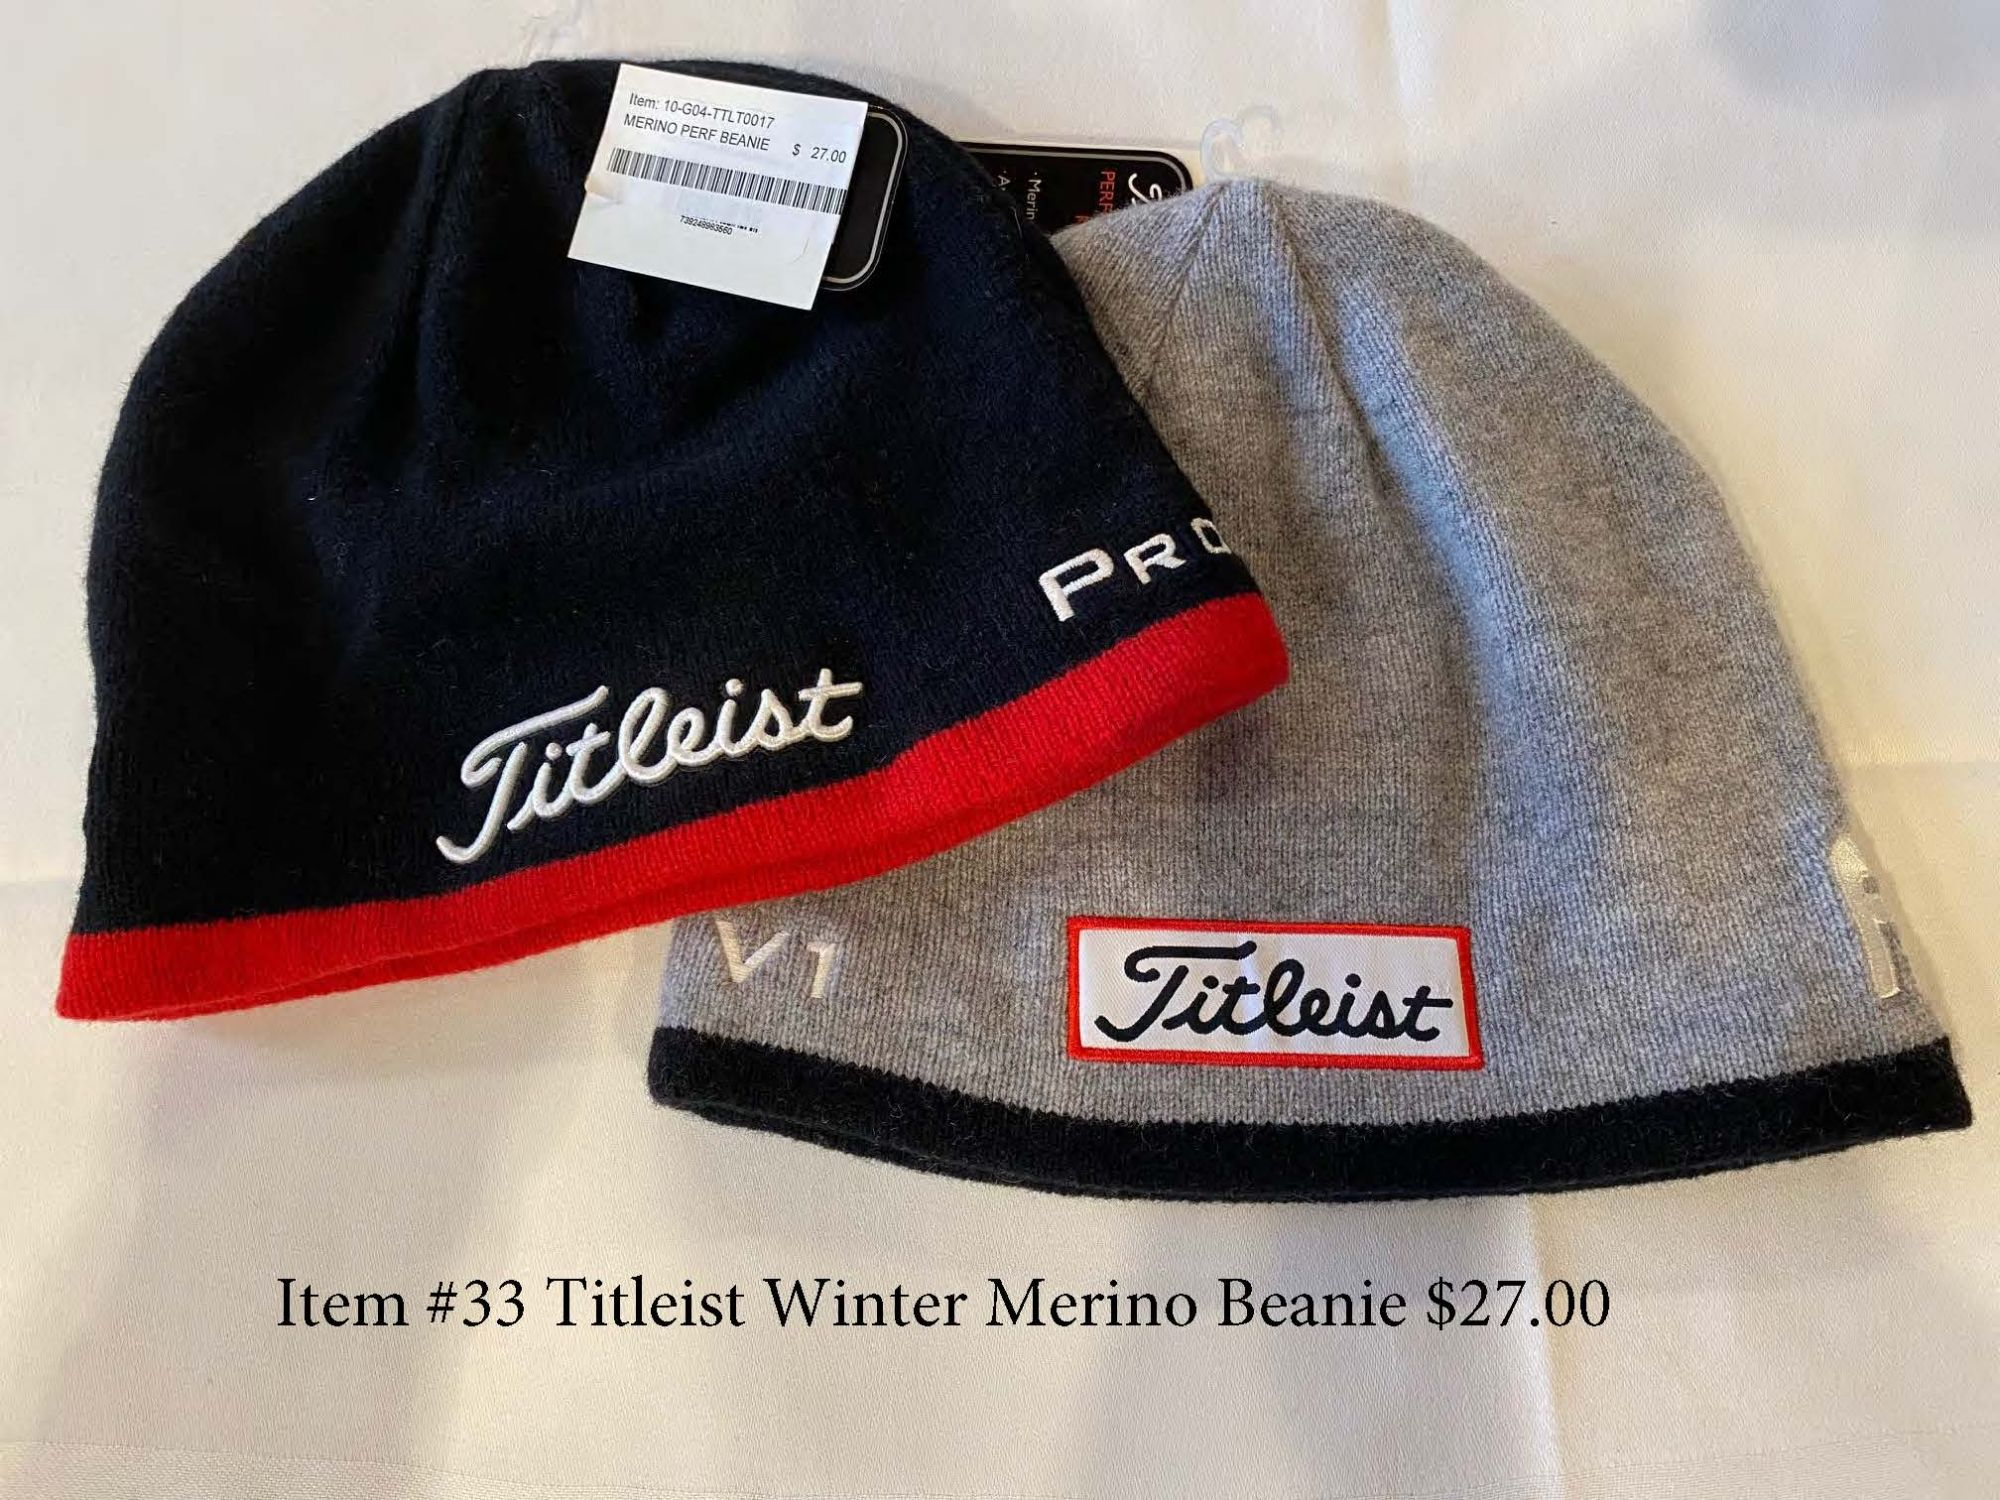 Item_33_Titleist_Winter_Merino_Beanie_27.00.jpg